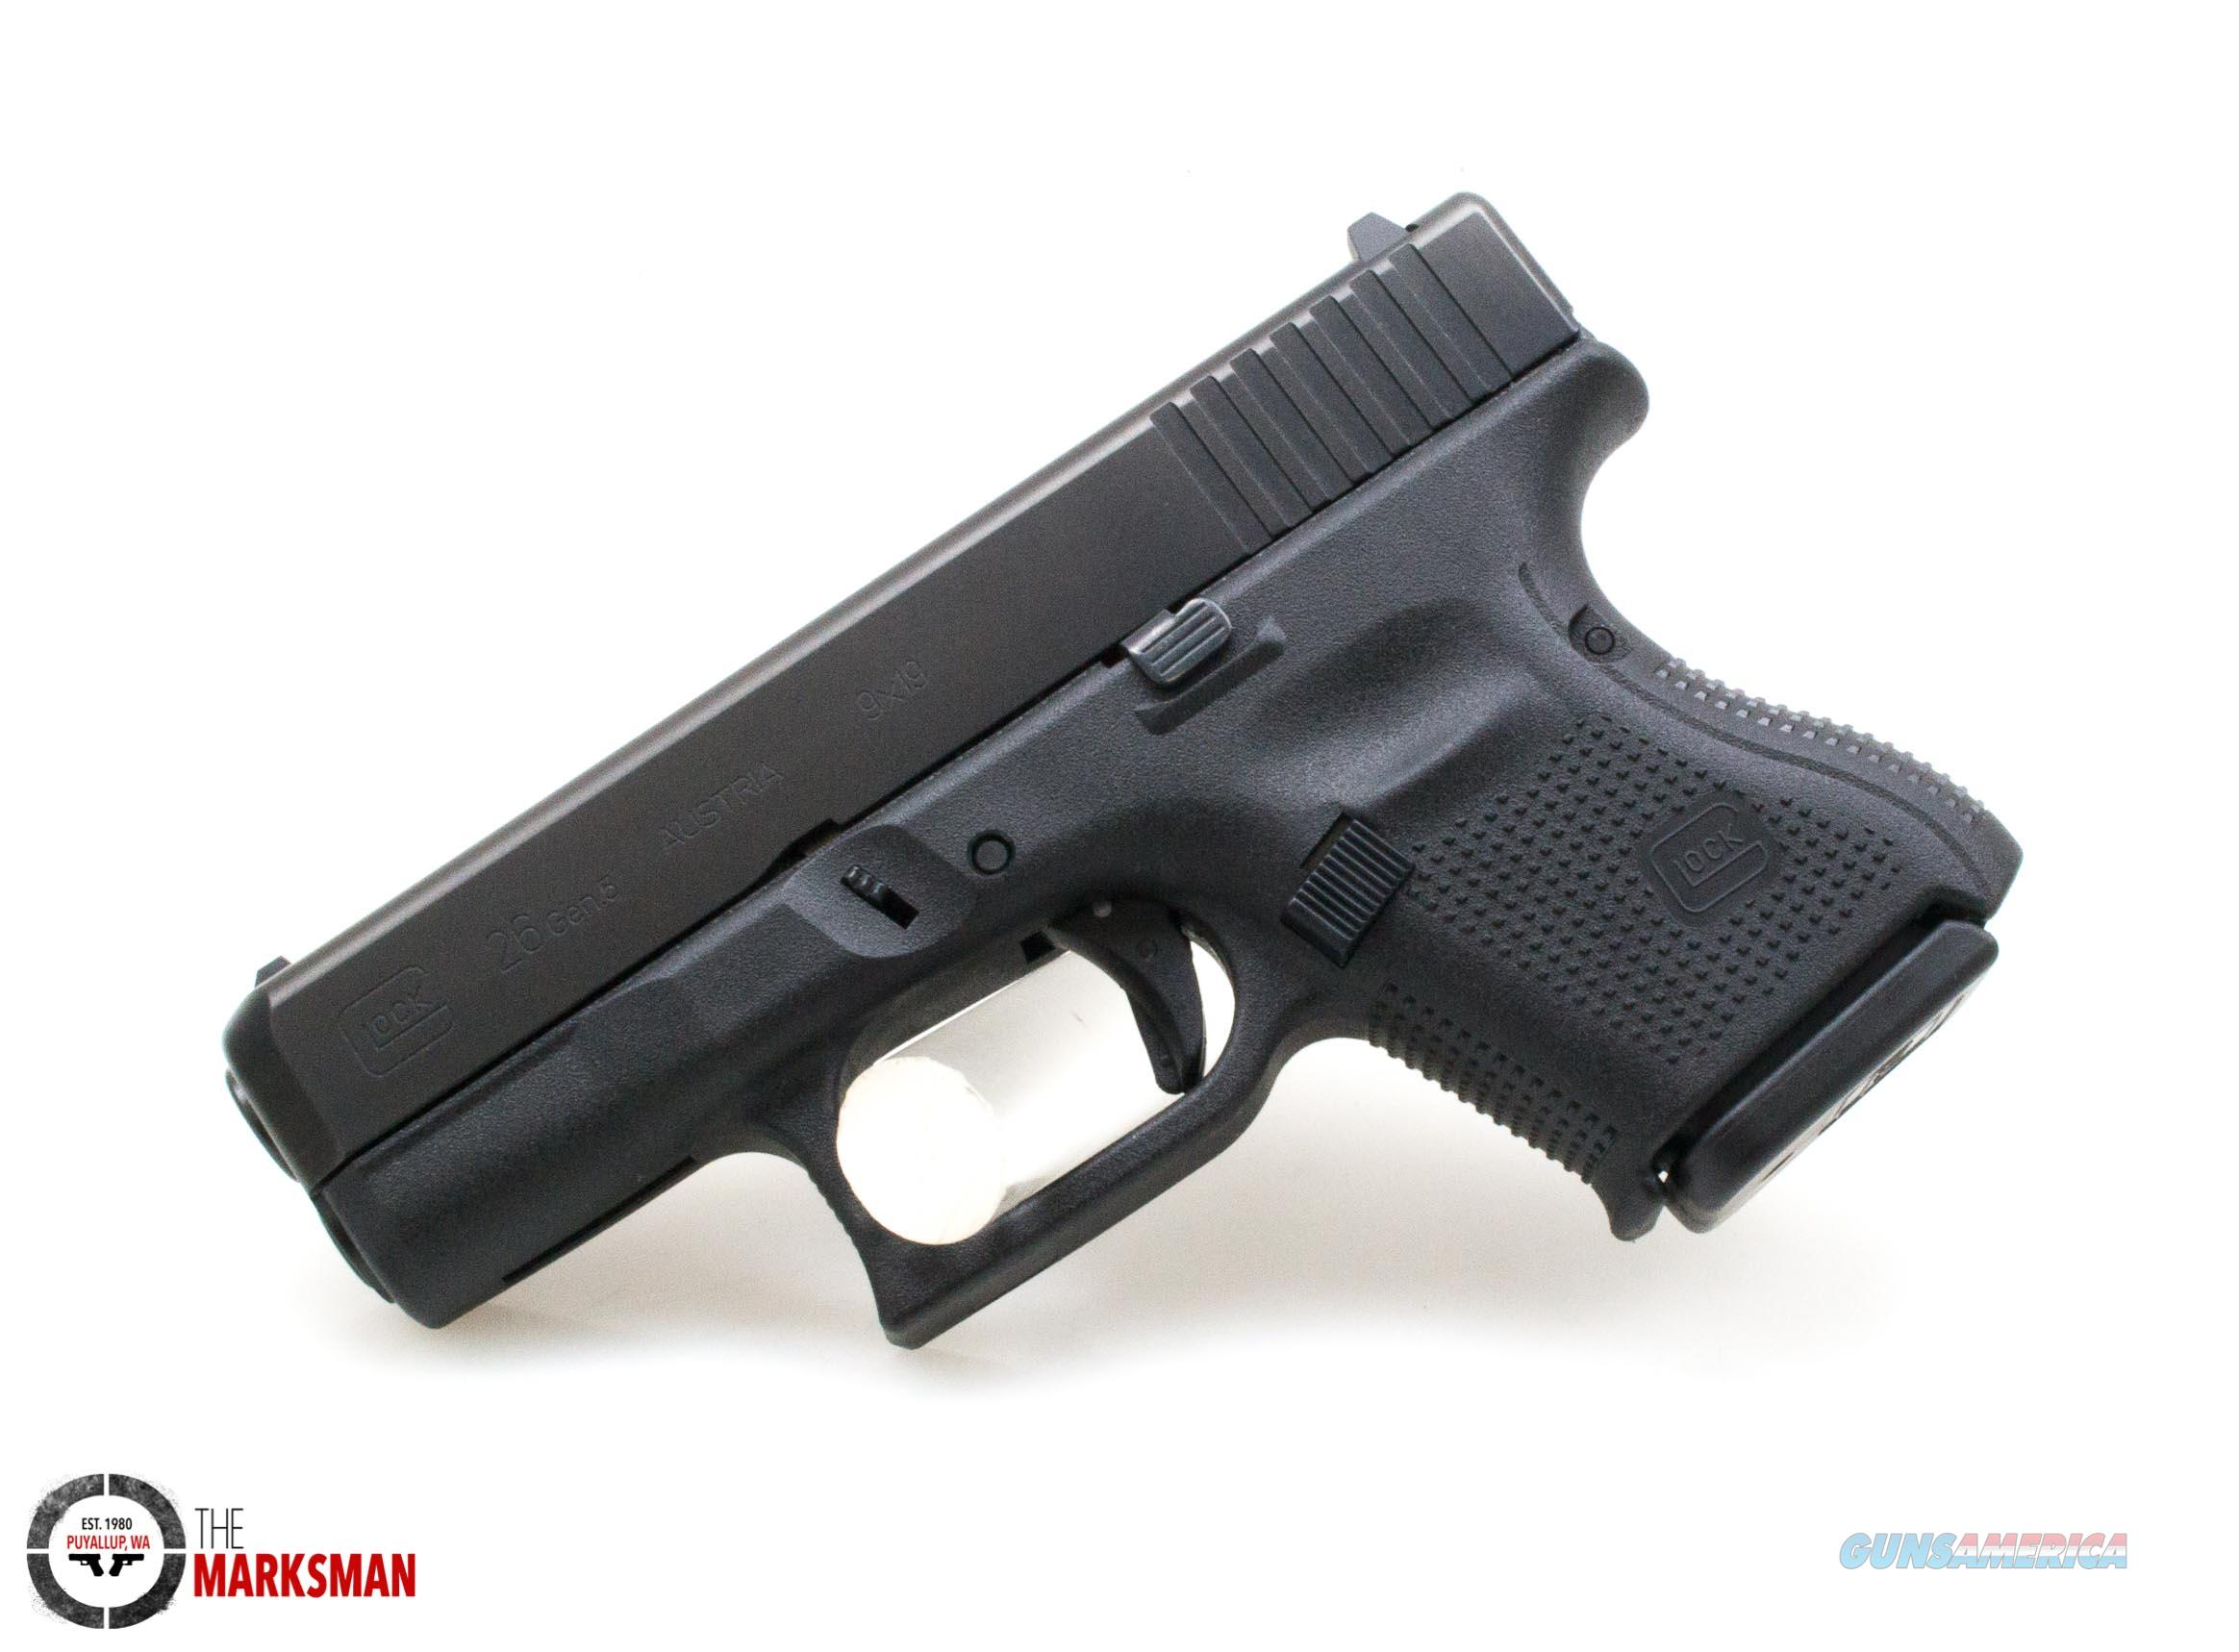 Glock 26 Generation 5, 9mm NEW  Guns > Pistols > Glock Pistols > 26/27